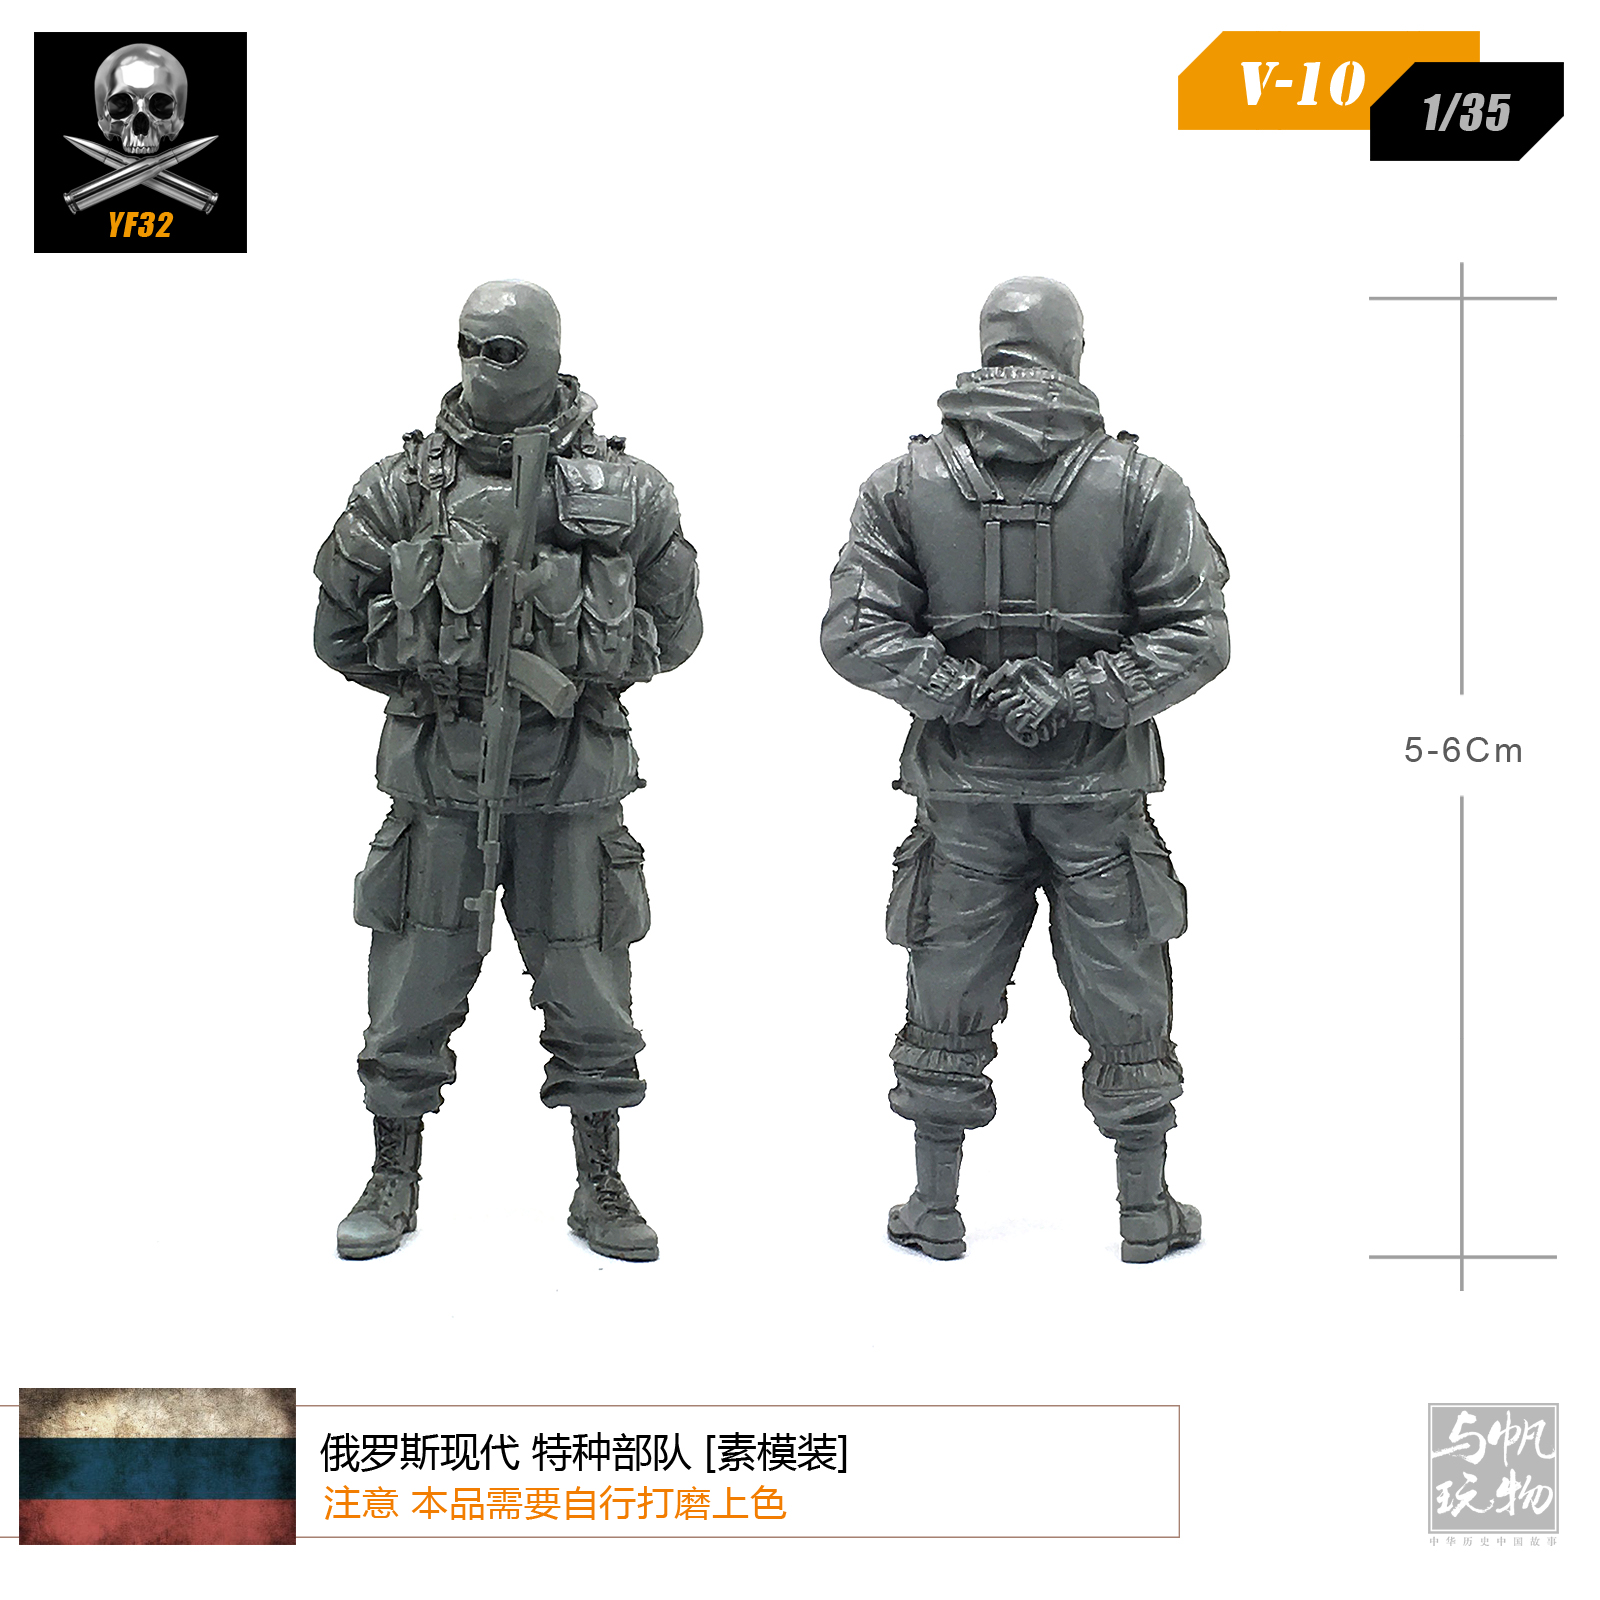 1/35 Resin Model Of Modern Russian Soldier Special Force Soldier Colorless And Self-assembled  V10